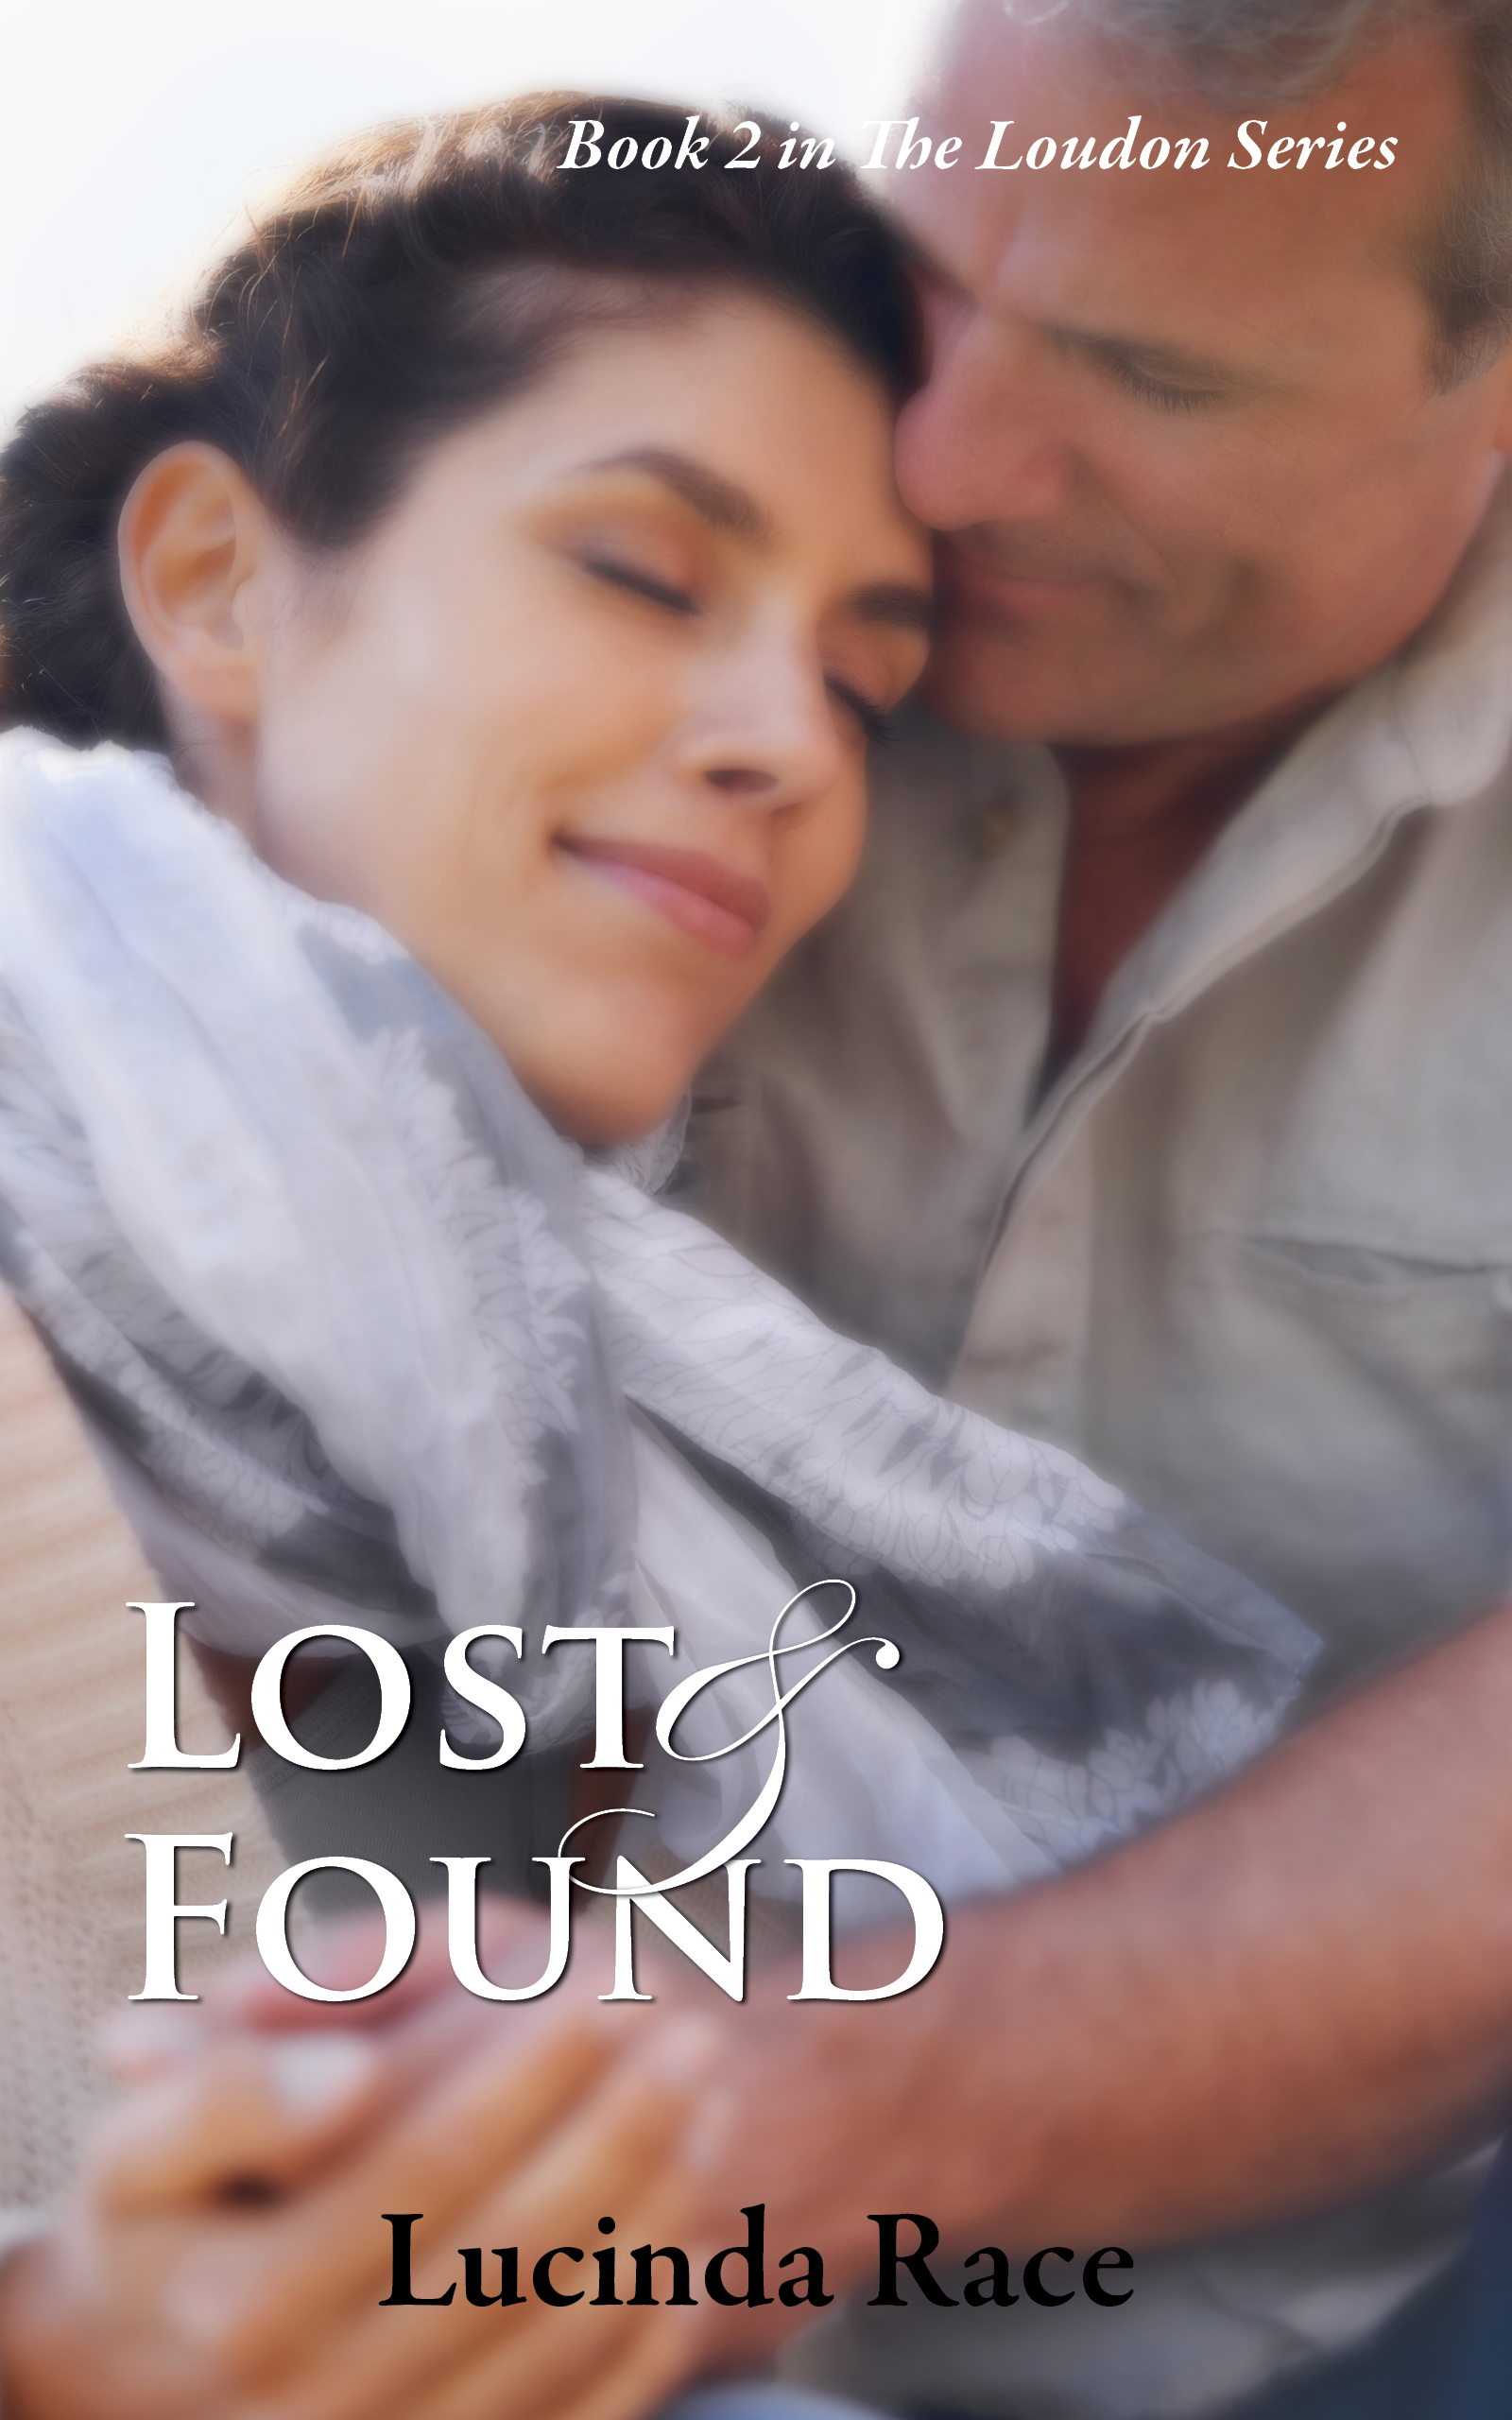 Lost and Found by Lucinda Race